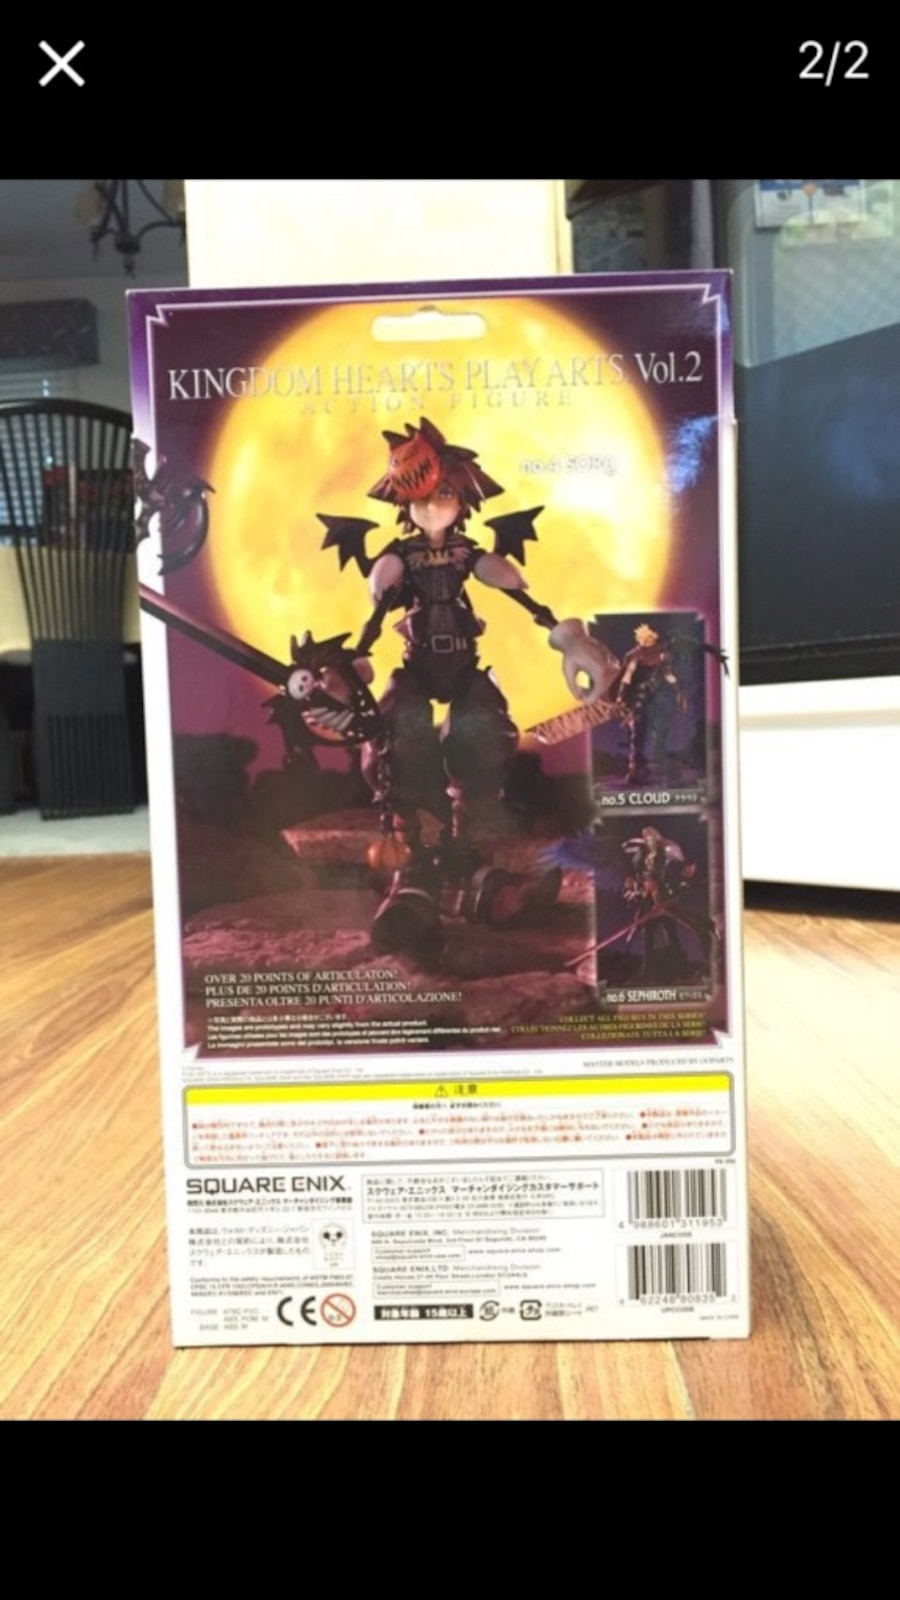 Kingdom Hearts Play Arts. Vol.2 action figure - San Luis Rey